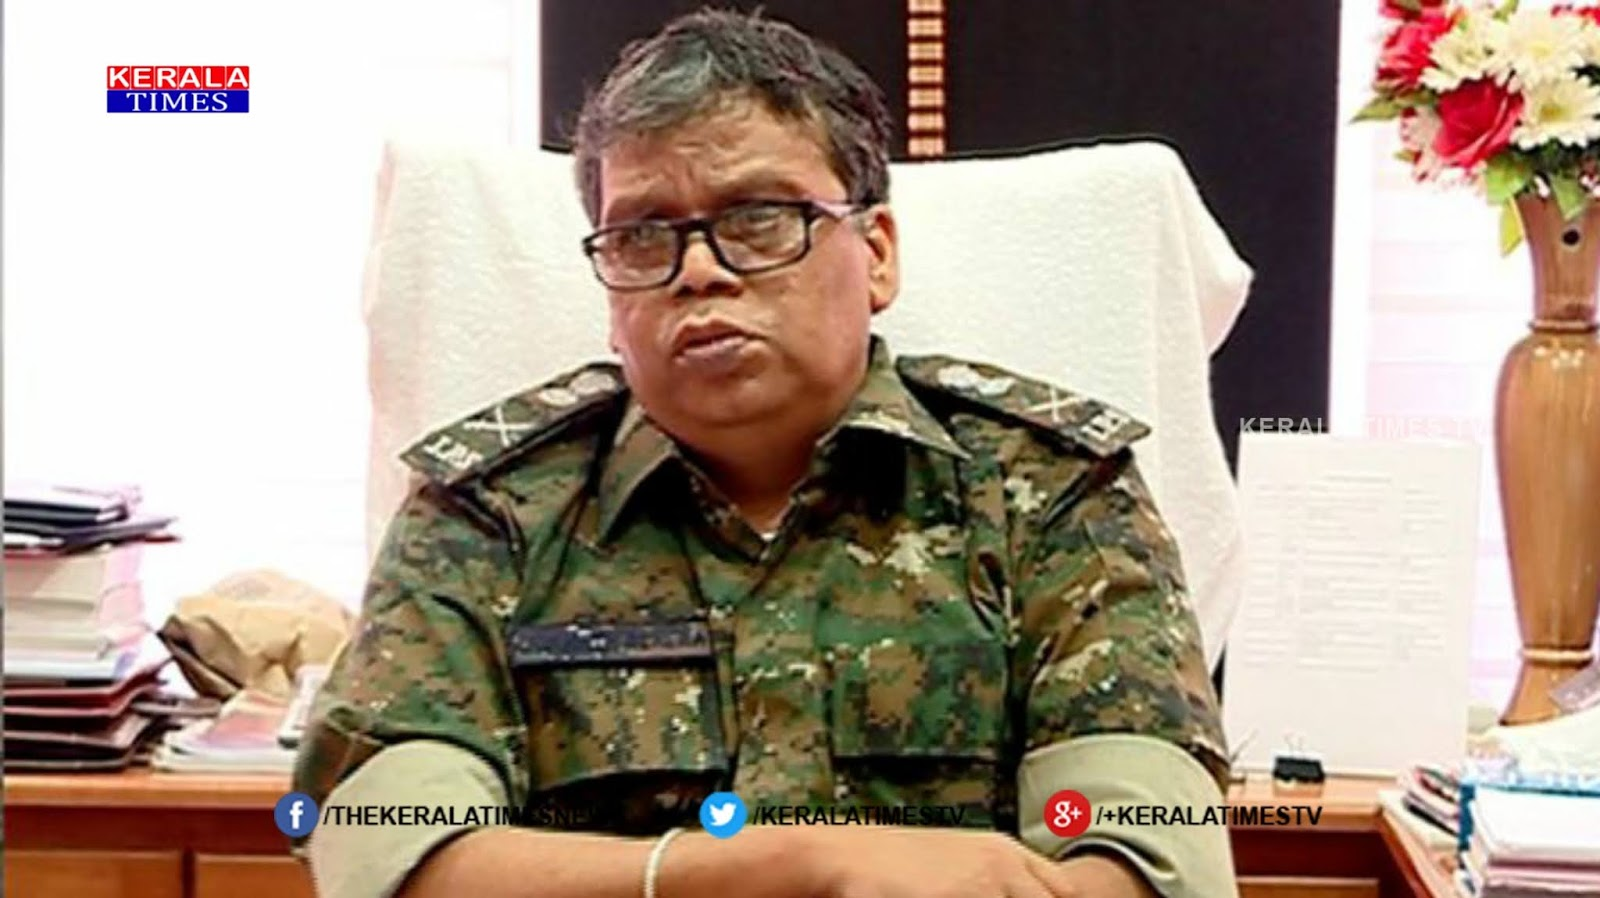 No firearms were reported from the SAP camp, police said,www.thekeralatimes.com